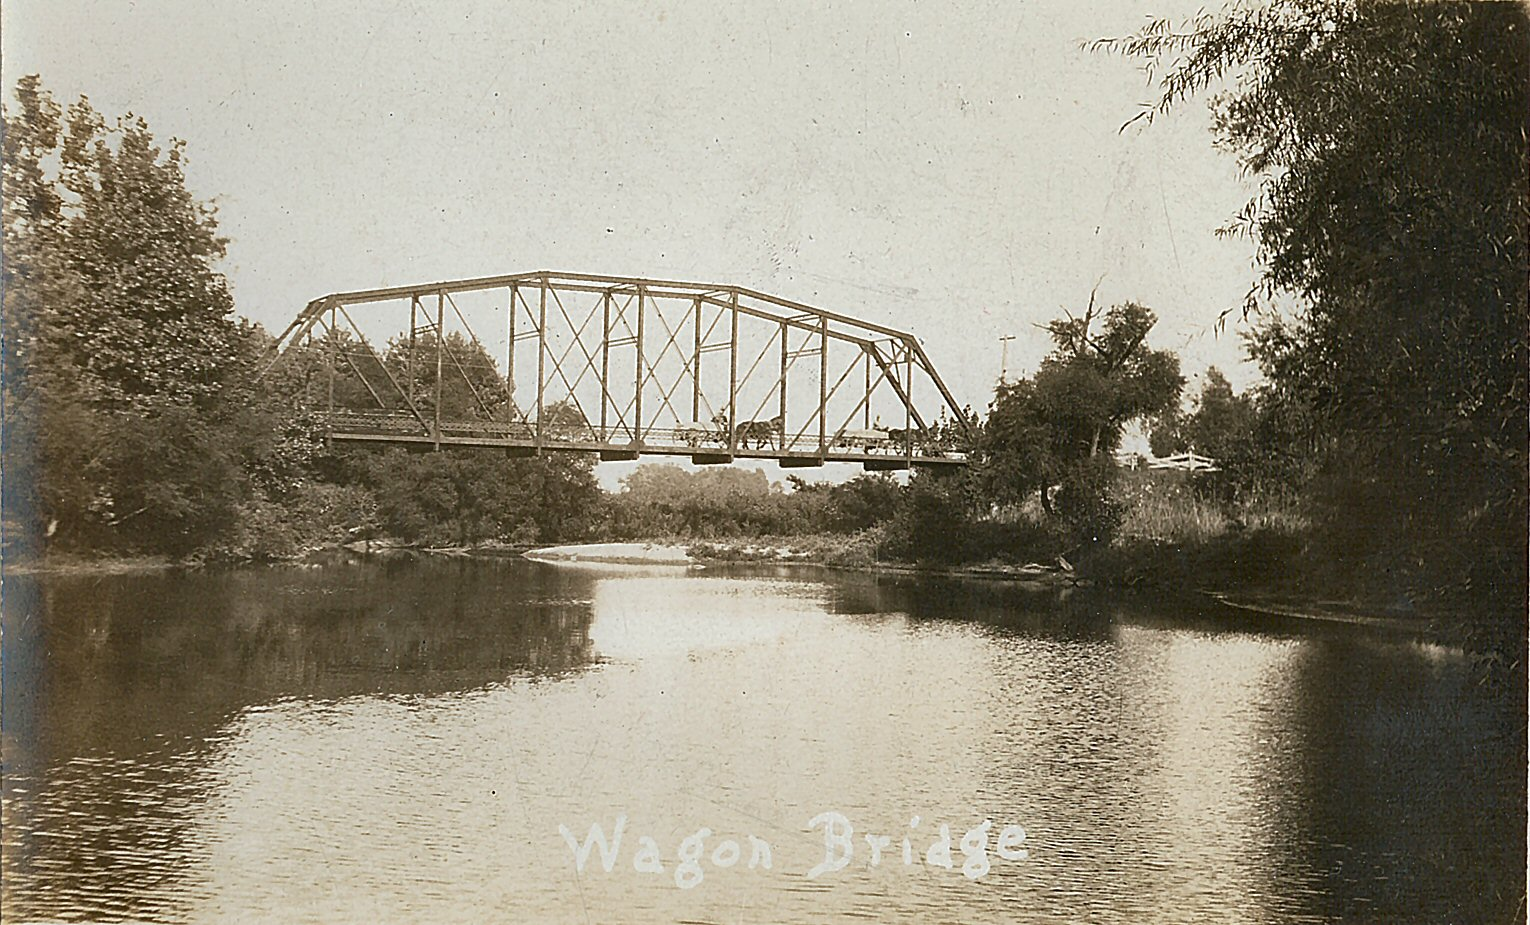 Wagon Bridge